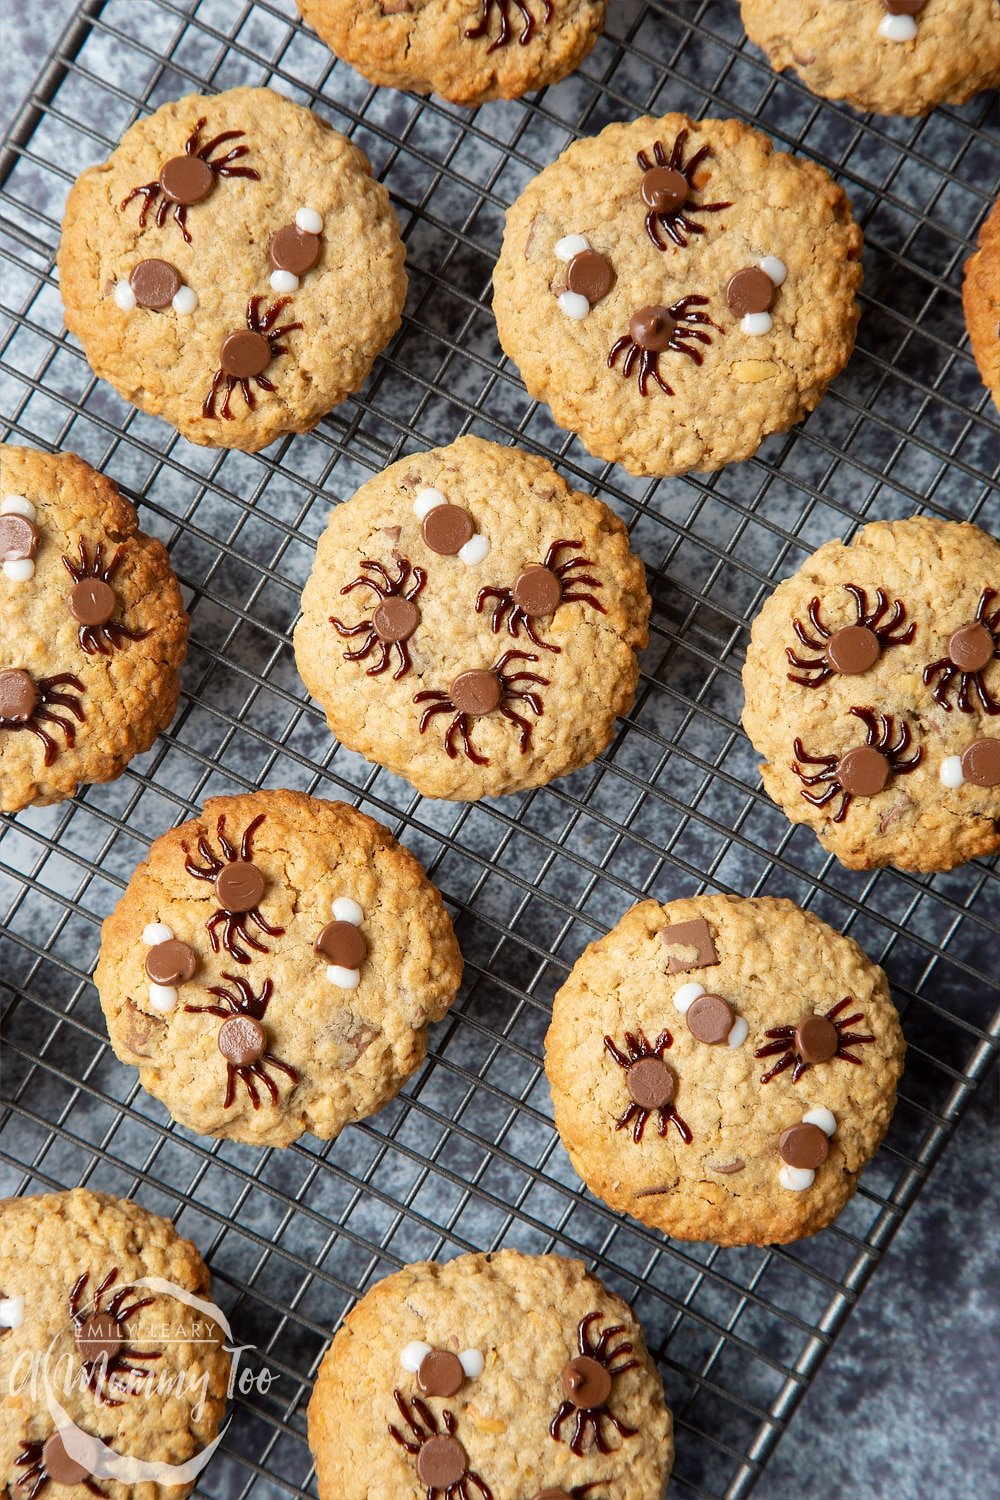 Halloween peanut butter spider cookies cooling on a wire rack and another set arranged on a plate.